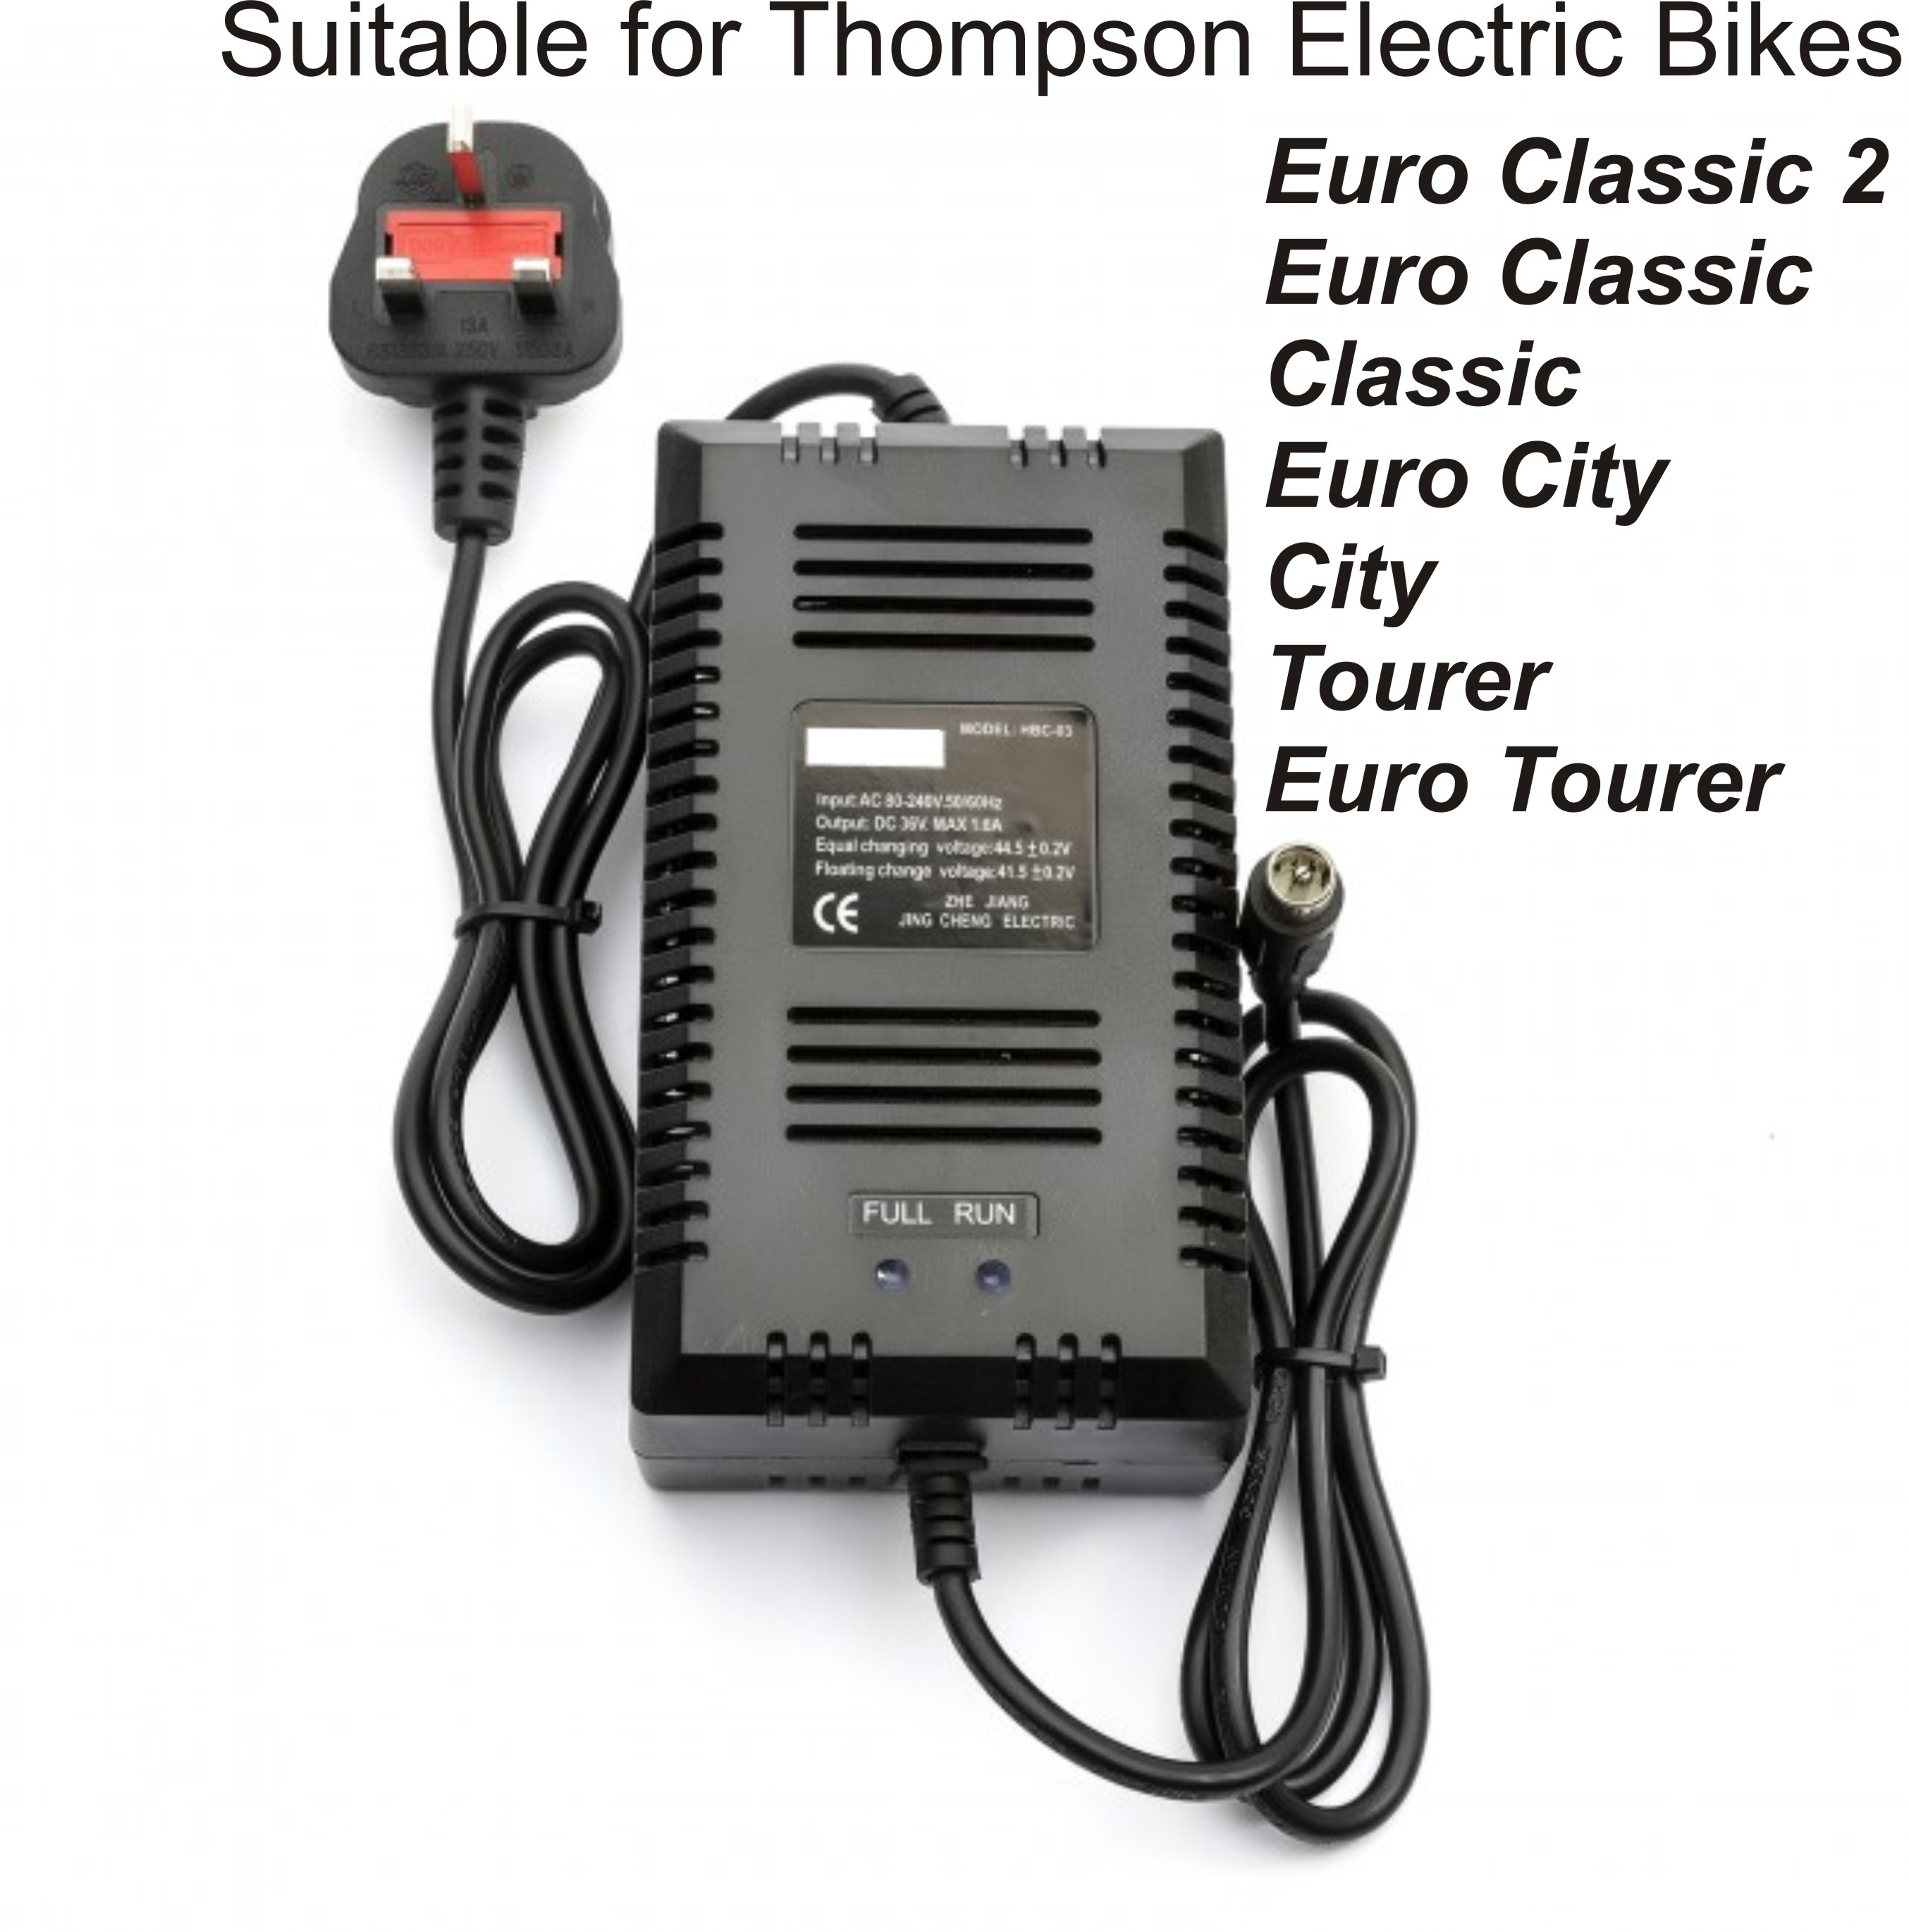 Battery Charger for Thompson Euro Classic 2, City & Tourer Bikes